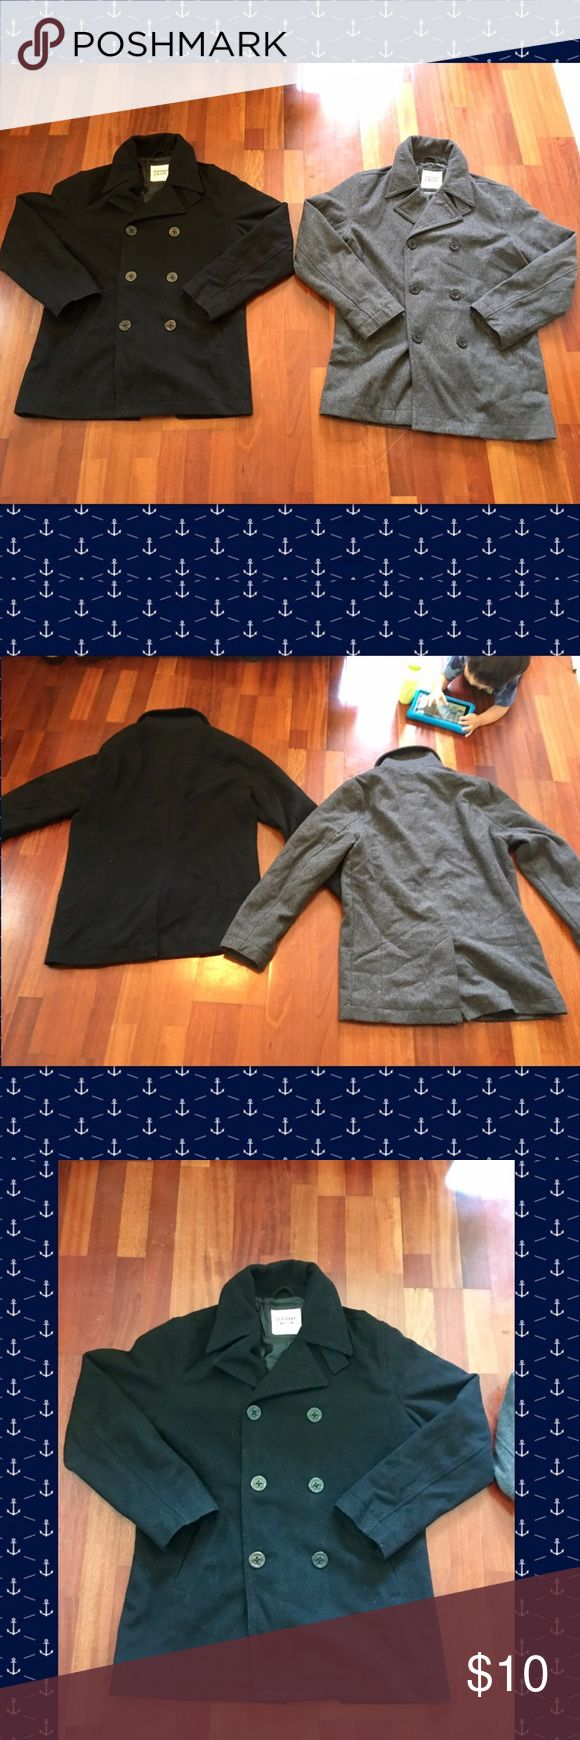 Men's Peacoats A set of men's peacoats. Black and grey peacoats double breasted wool polyester blend. Has large anchor ⚓️ buttons and front pockets. Both coats have a seam rip under the left armpit, otherwise still in good condition. Old Navy Jackets & Coats Pea Coats